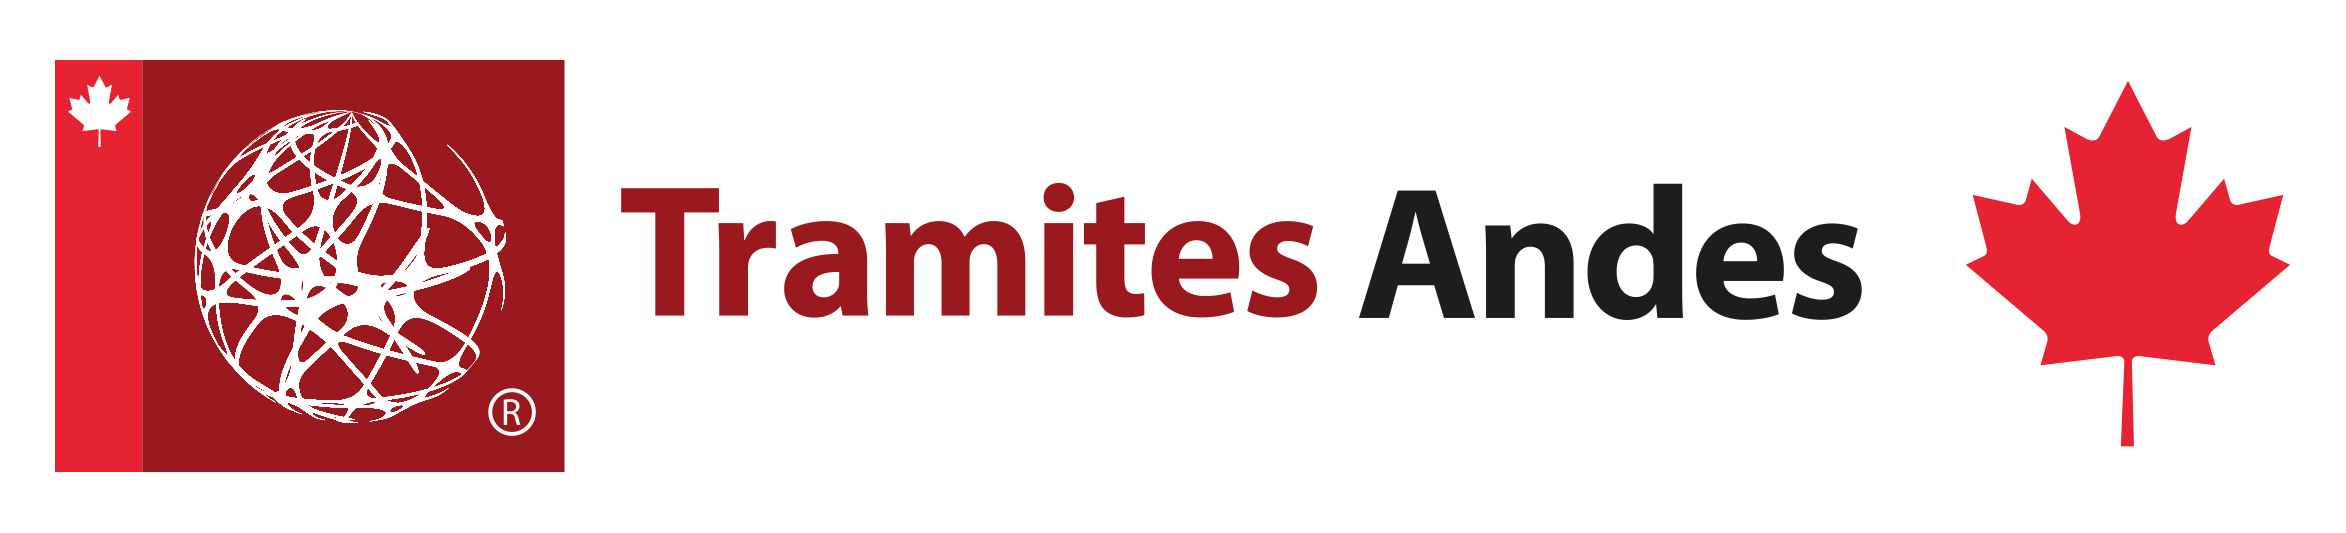 Tramites Andes